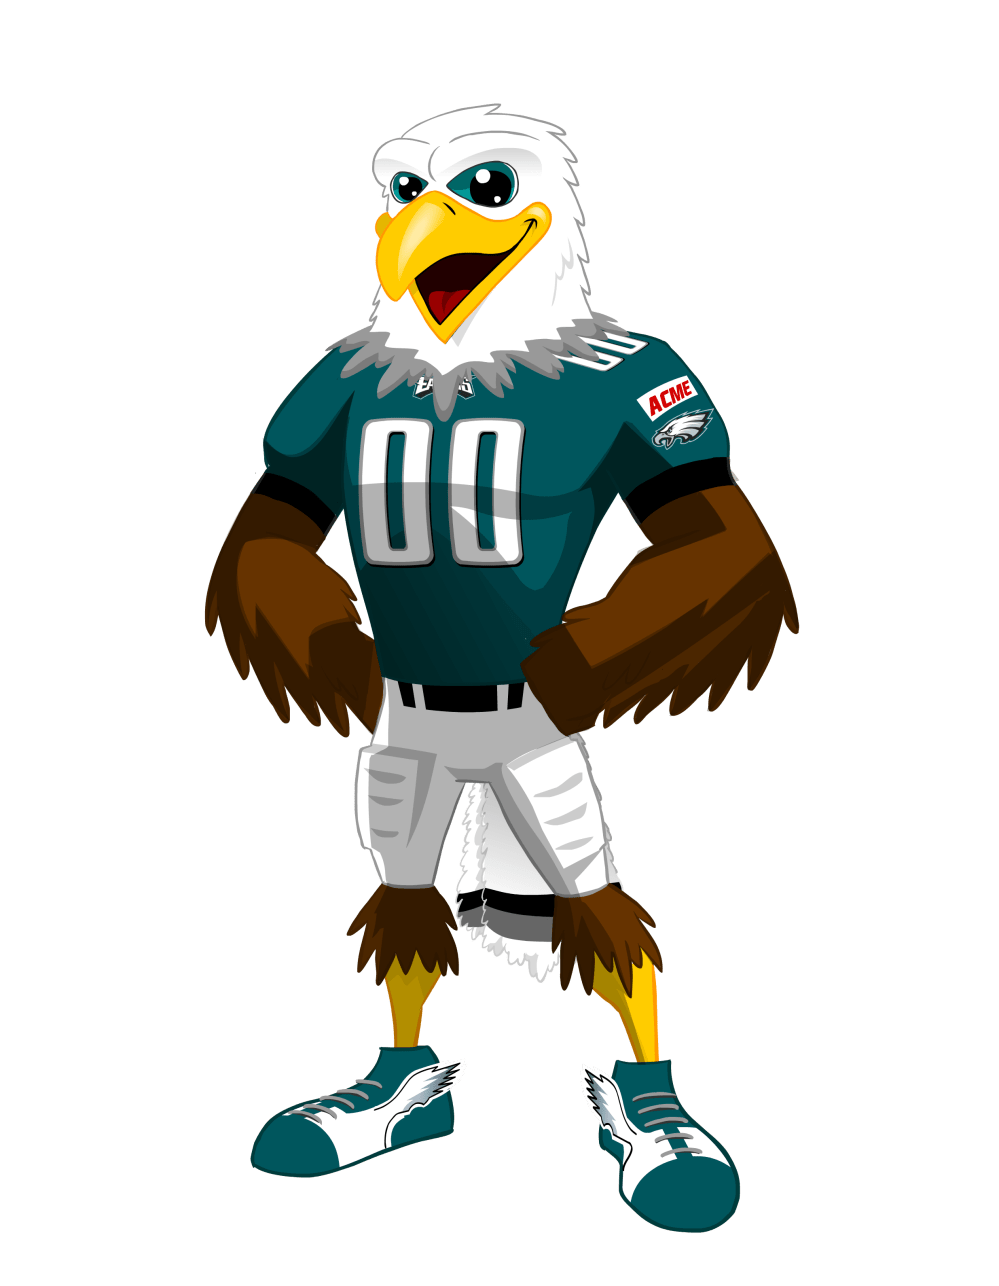 medium resolution of swoop one of the most beloved and iconic mascots in the nfl is known for his fun loving personality being the center of attention and entertaining fans